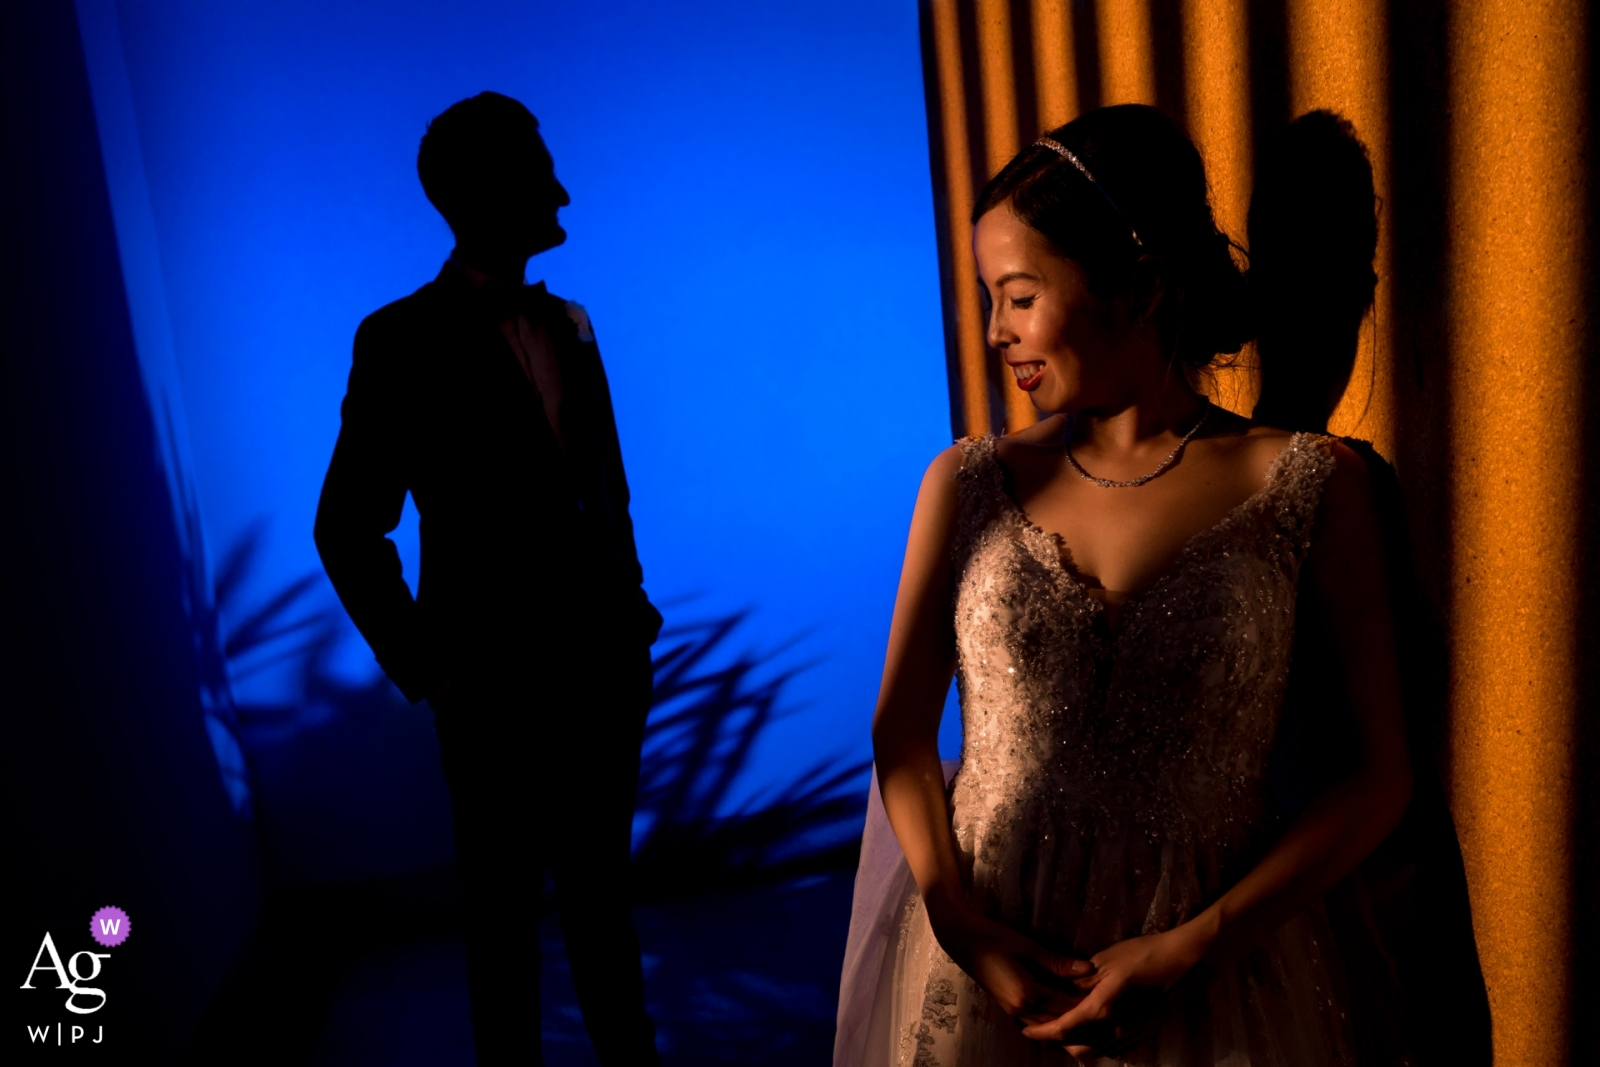 Phuket, Thailand Wedding Portrait Photographer - Creative lighting for this bride and groom image